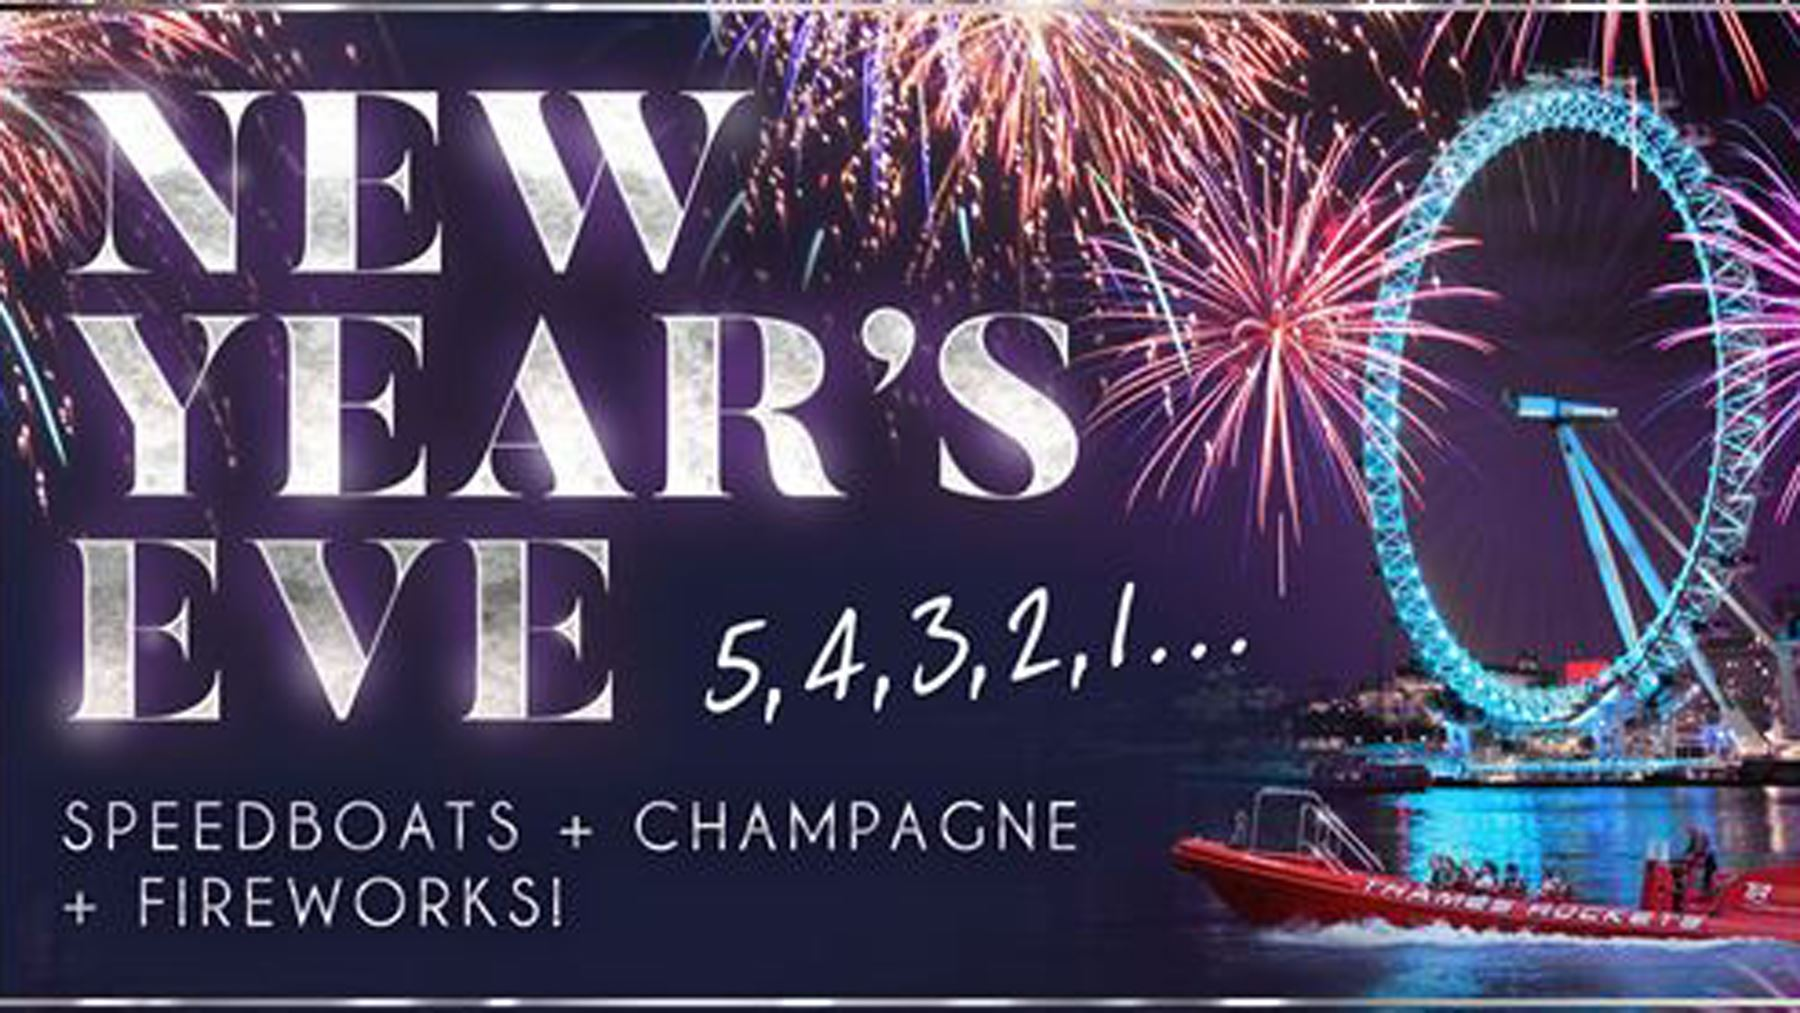 New Year's Eve - The Ultimate Evening